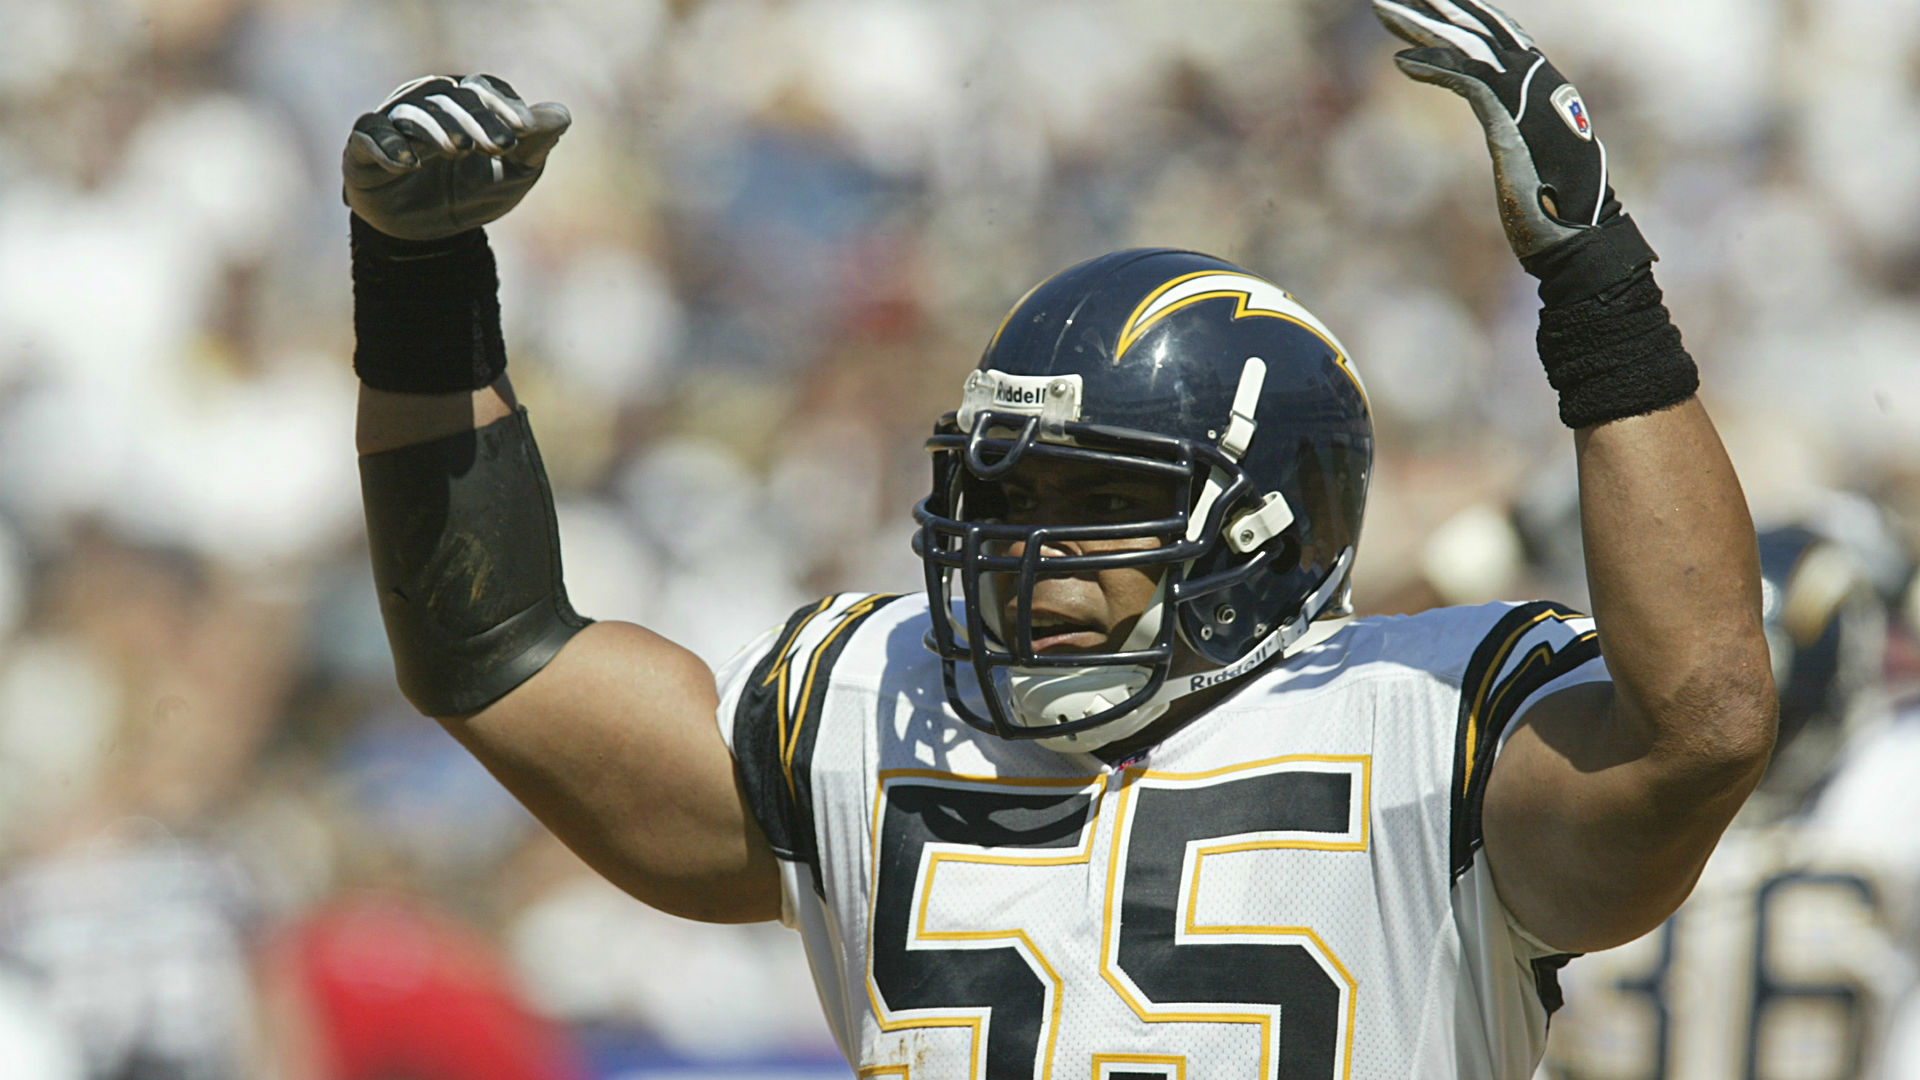 Junior Seau's daughter will speak at Hall of Fame induction